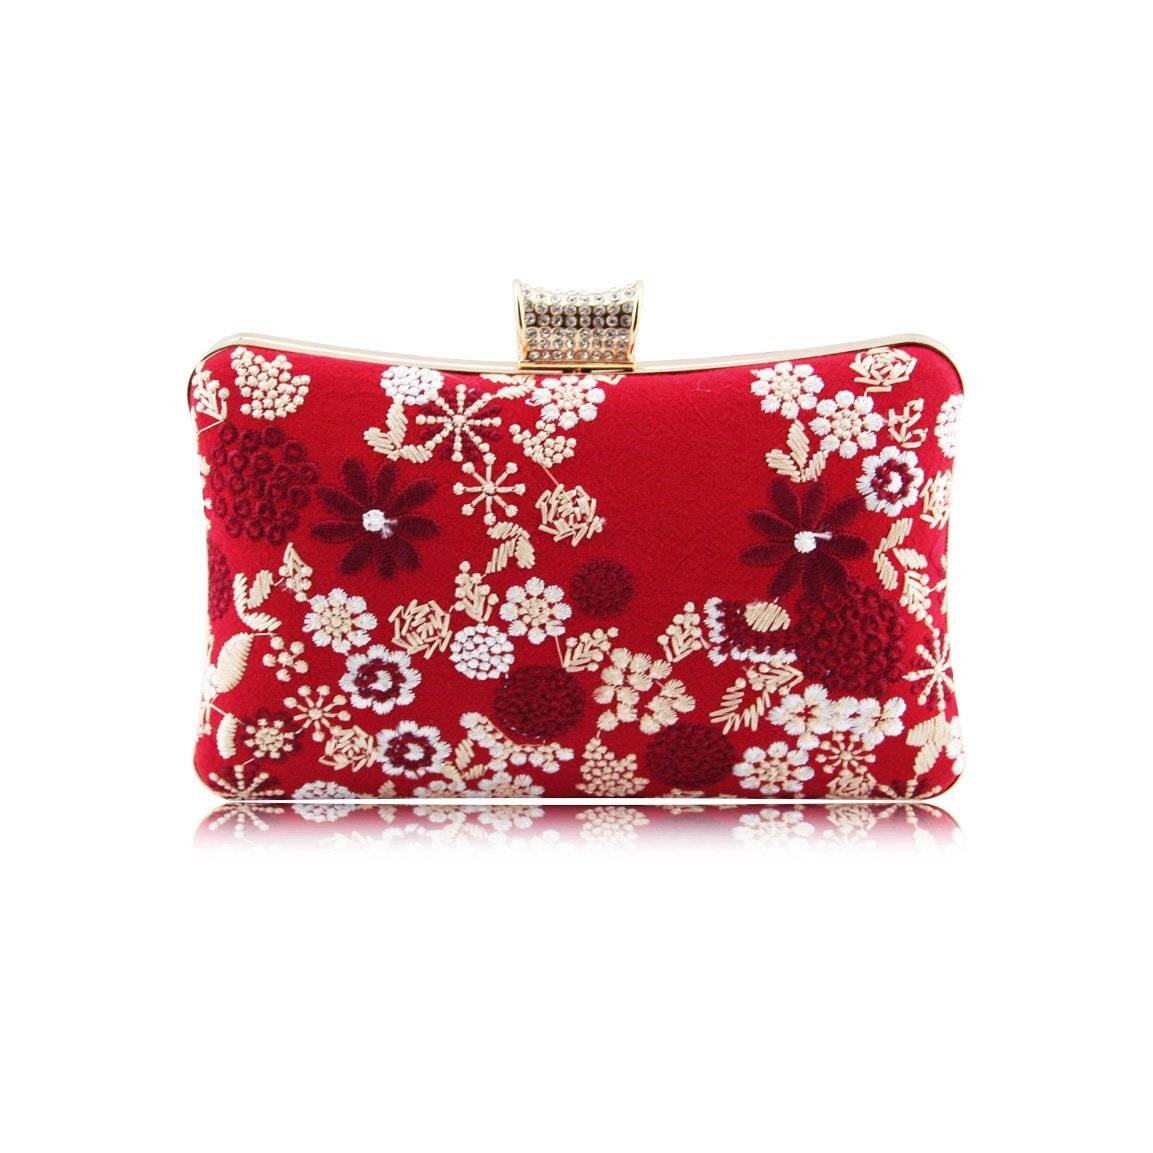 MoliMoi London  Womens  Red Vegan Floral Embroidered  Party Wedding Bridal Prom Evening  Clutch Purse  Bag - H008-200  Red Azury